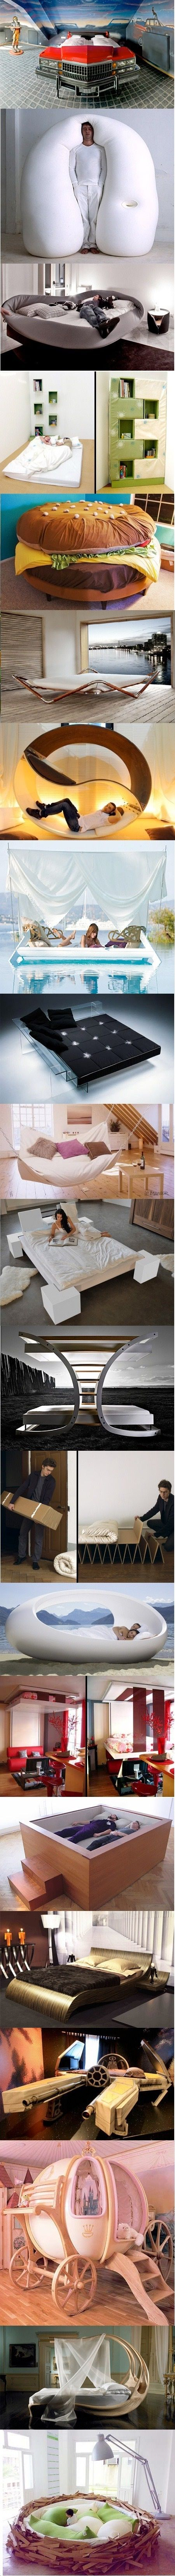 cool bedsDecor, Beds Lvl, Favorite Places, Creative, Cool Beds, Awesome Beds, Dreams House, Bedrooms, Design